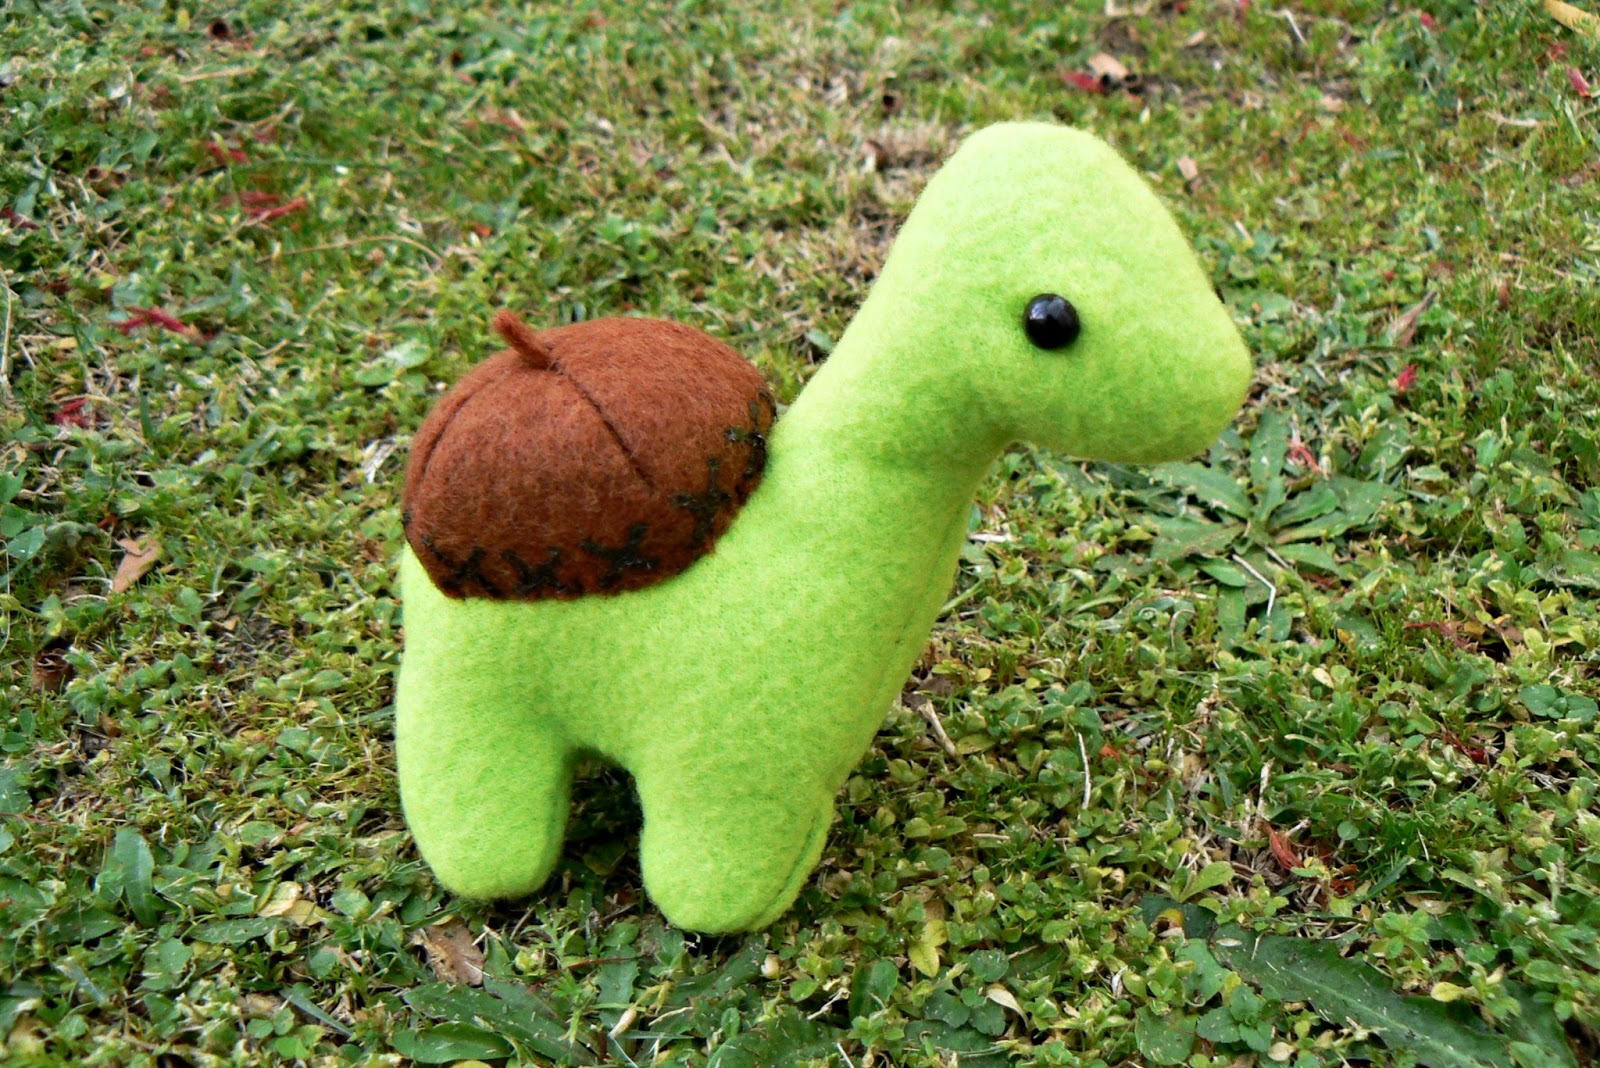 LDP: Sheldon the Dinosaur Plush DIY